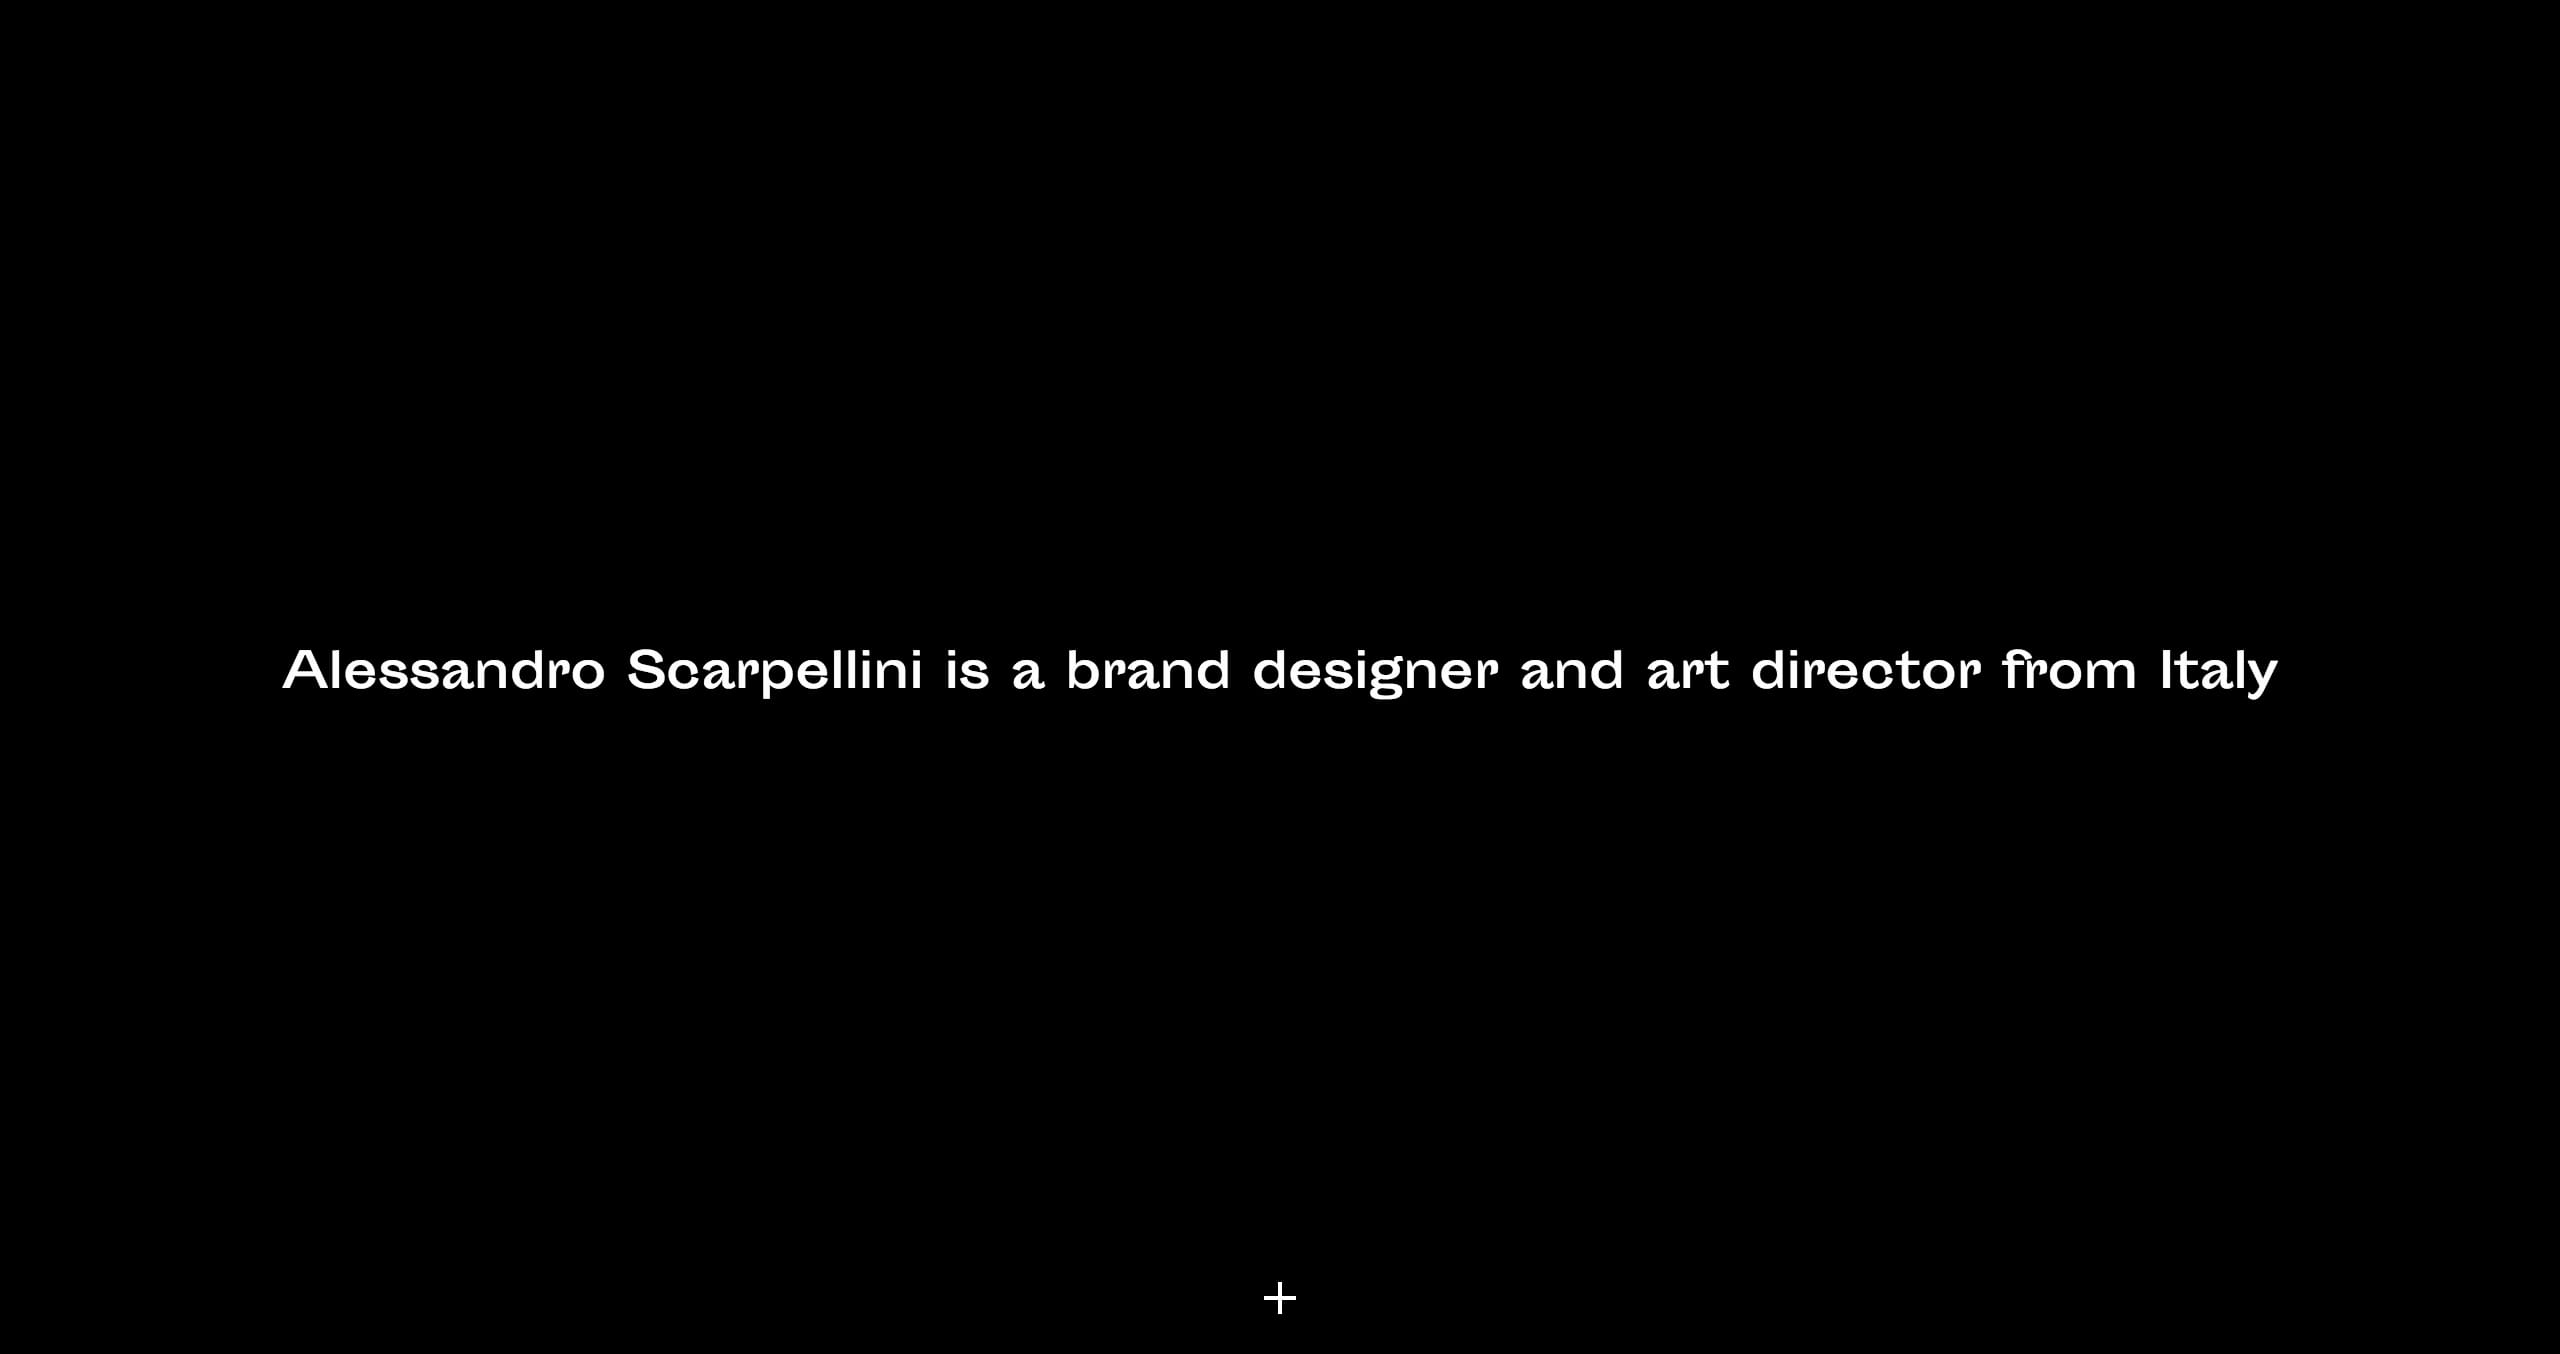 Alessandro Scarpellini Website Screenshot